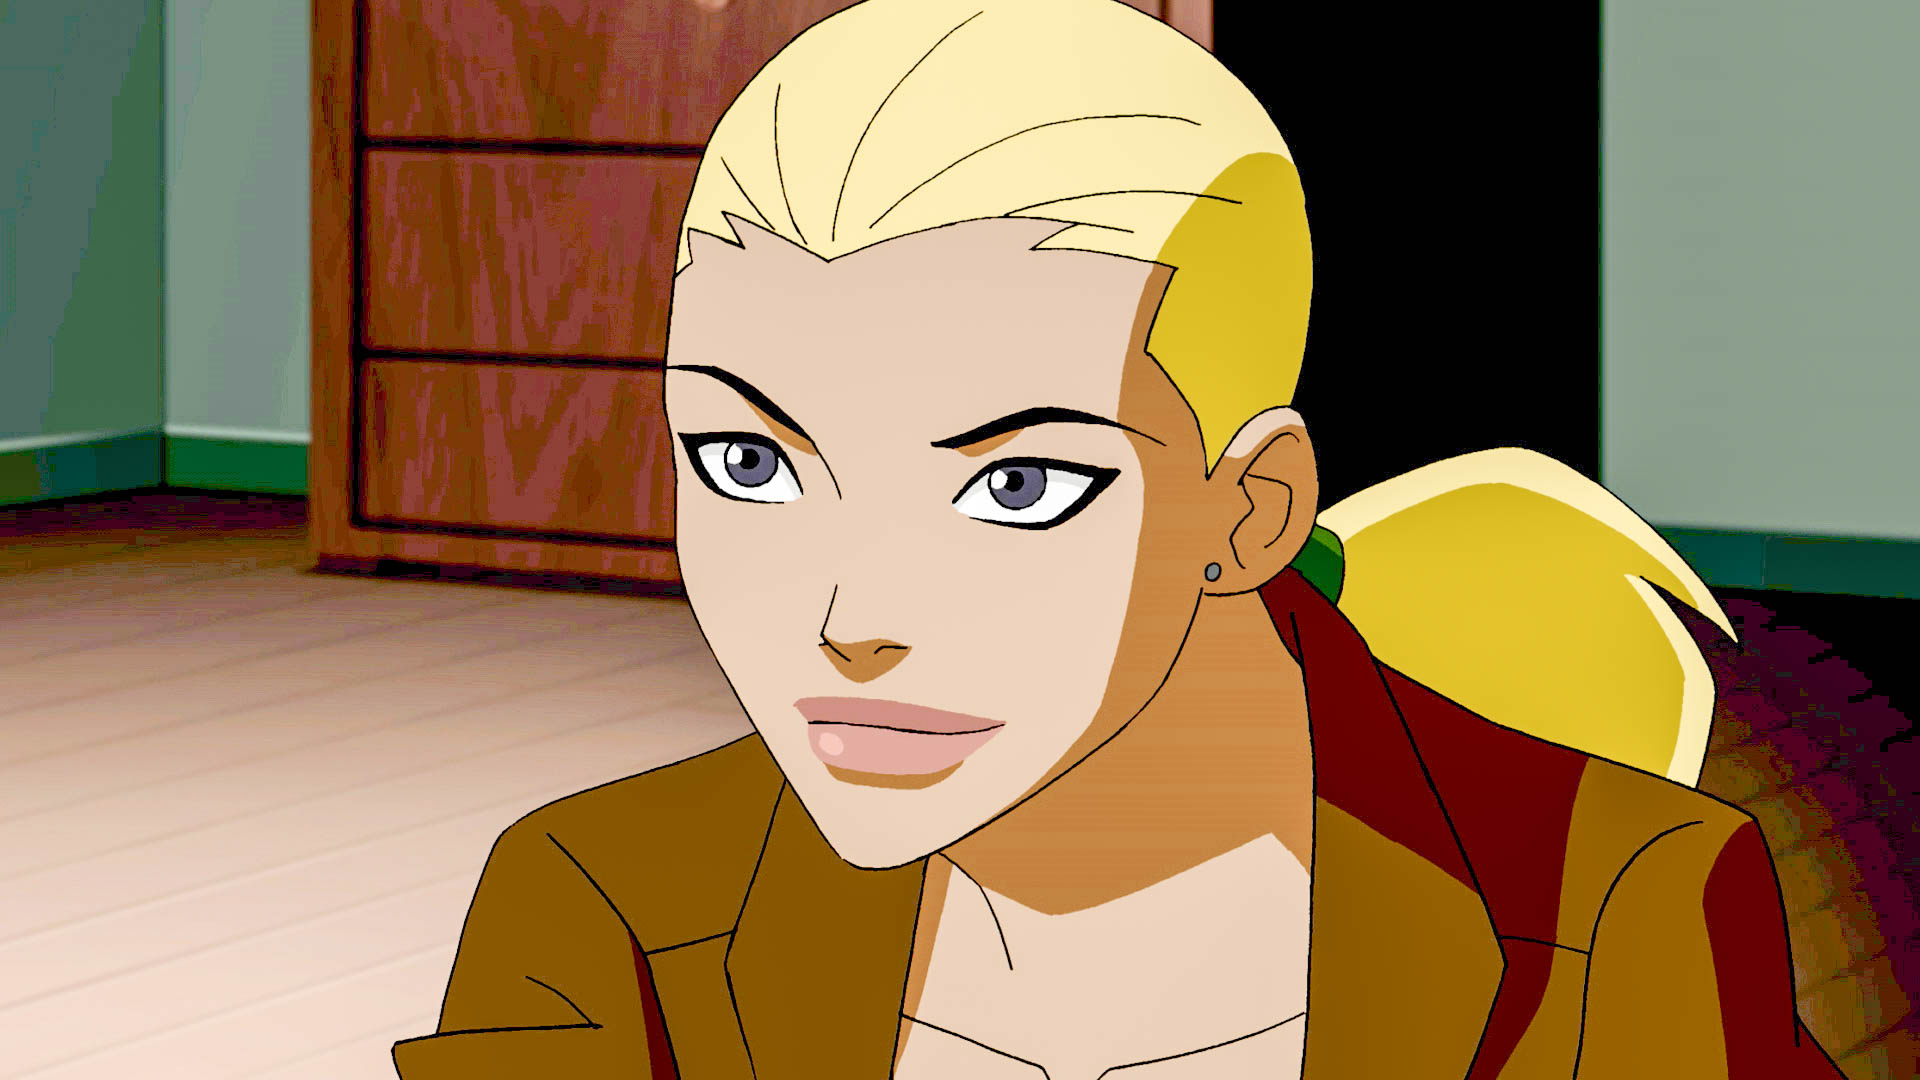 young justice 2016 animated hd wallpapers